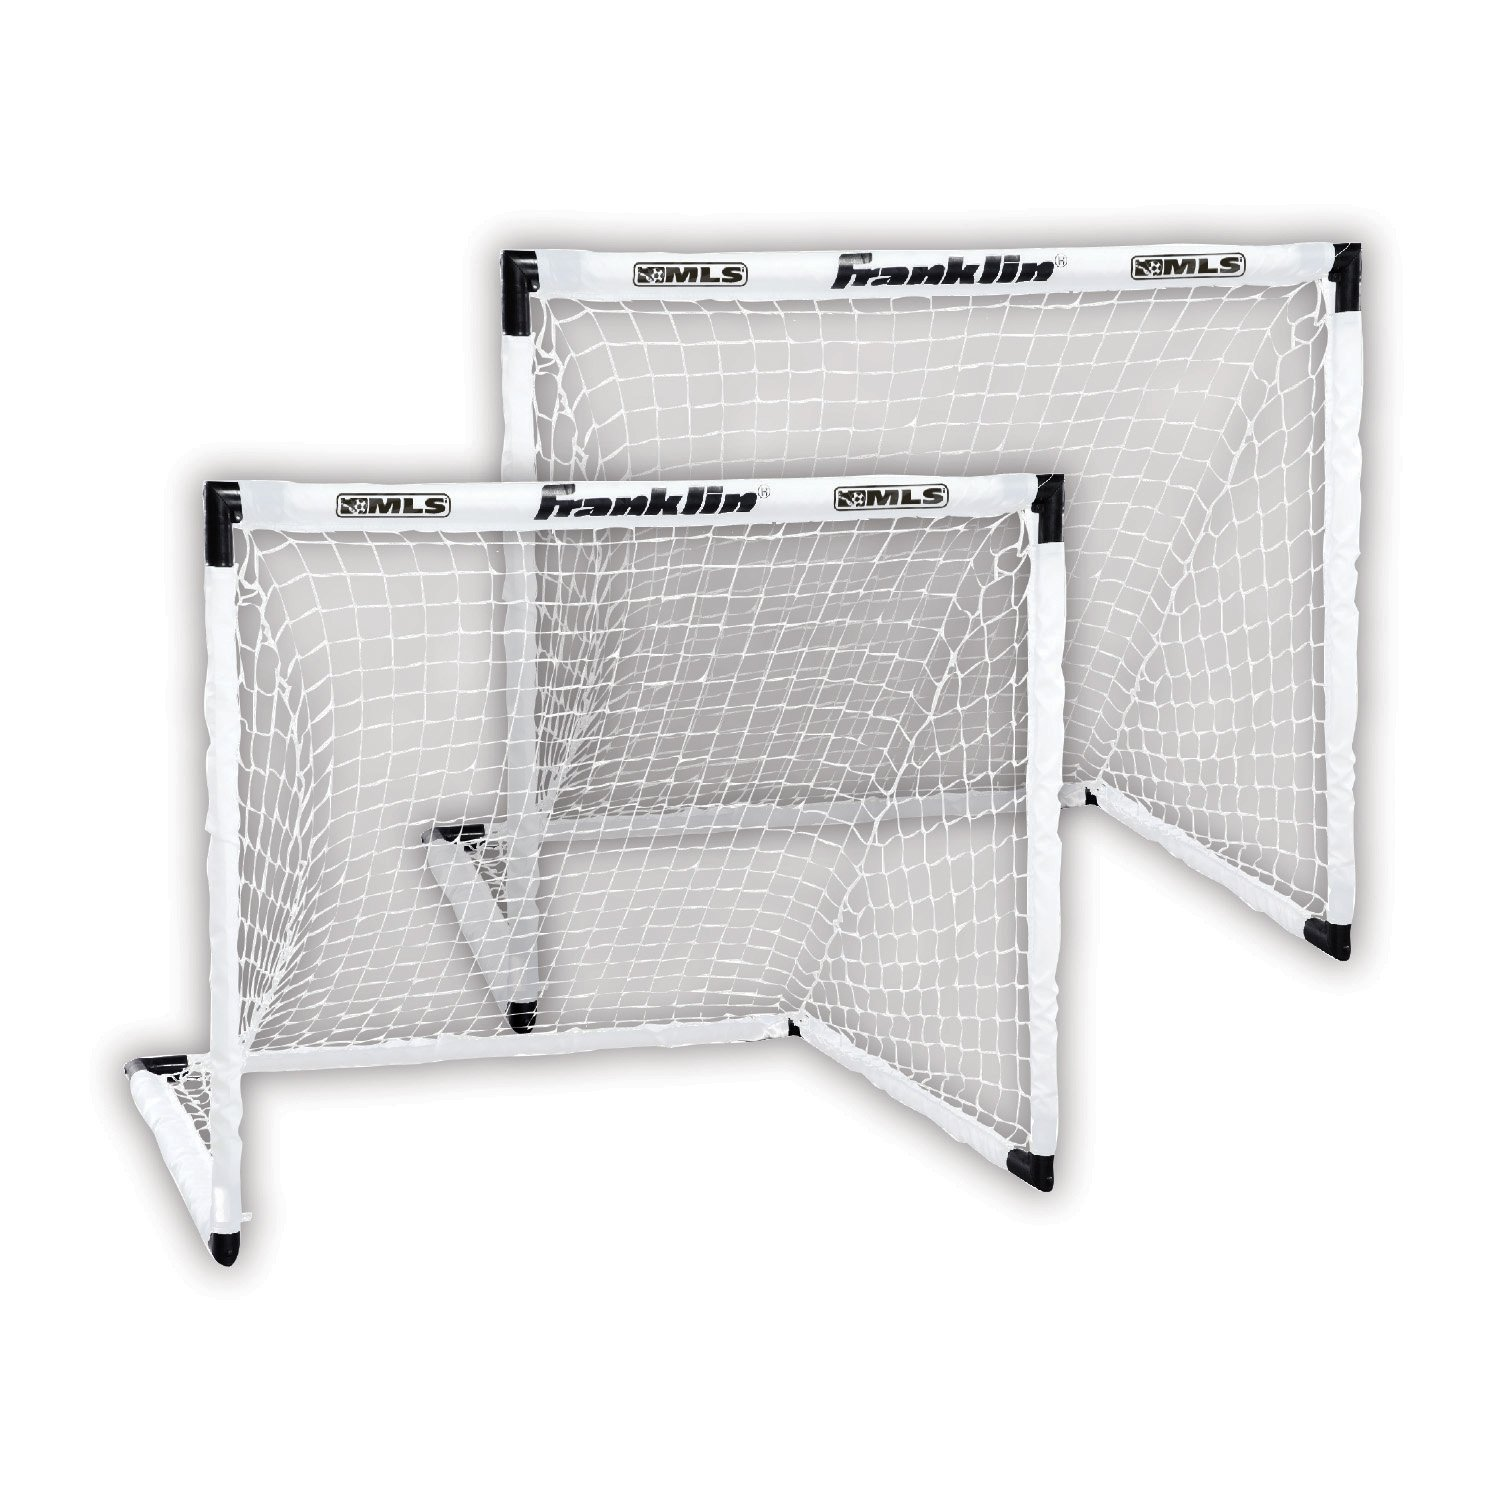 FINER DIY Youth Sports Soccer Goals